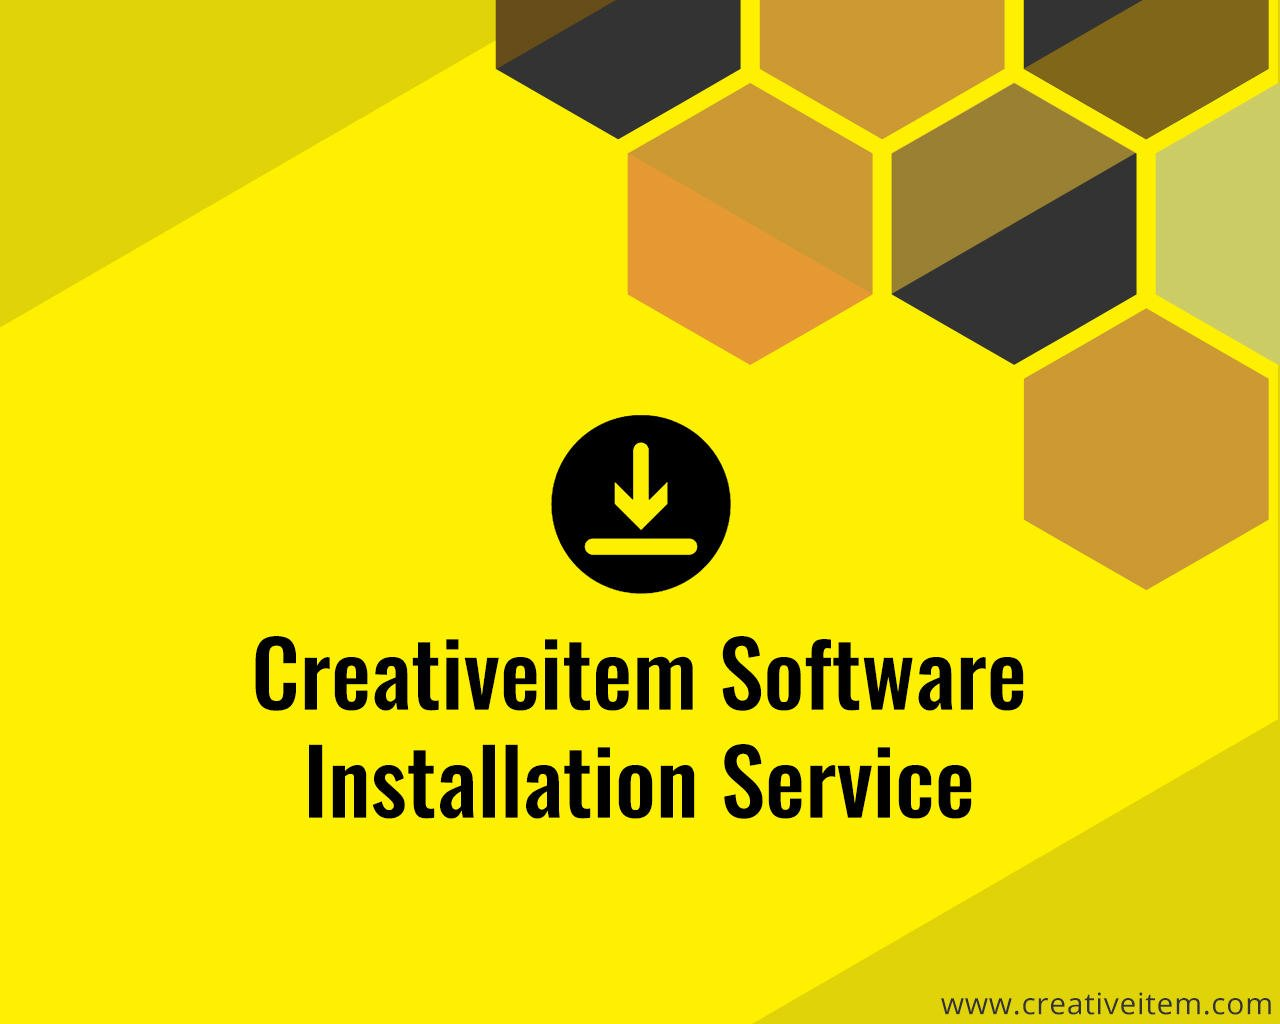 Creativeitem Software Installation Service by Creativeitem - 109319